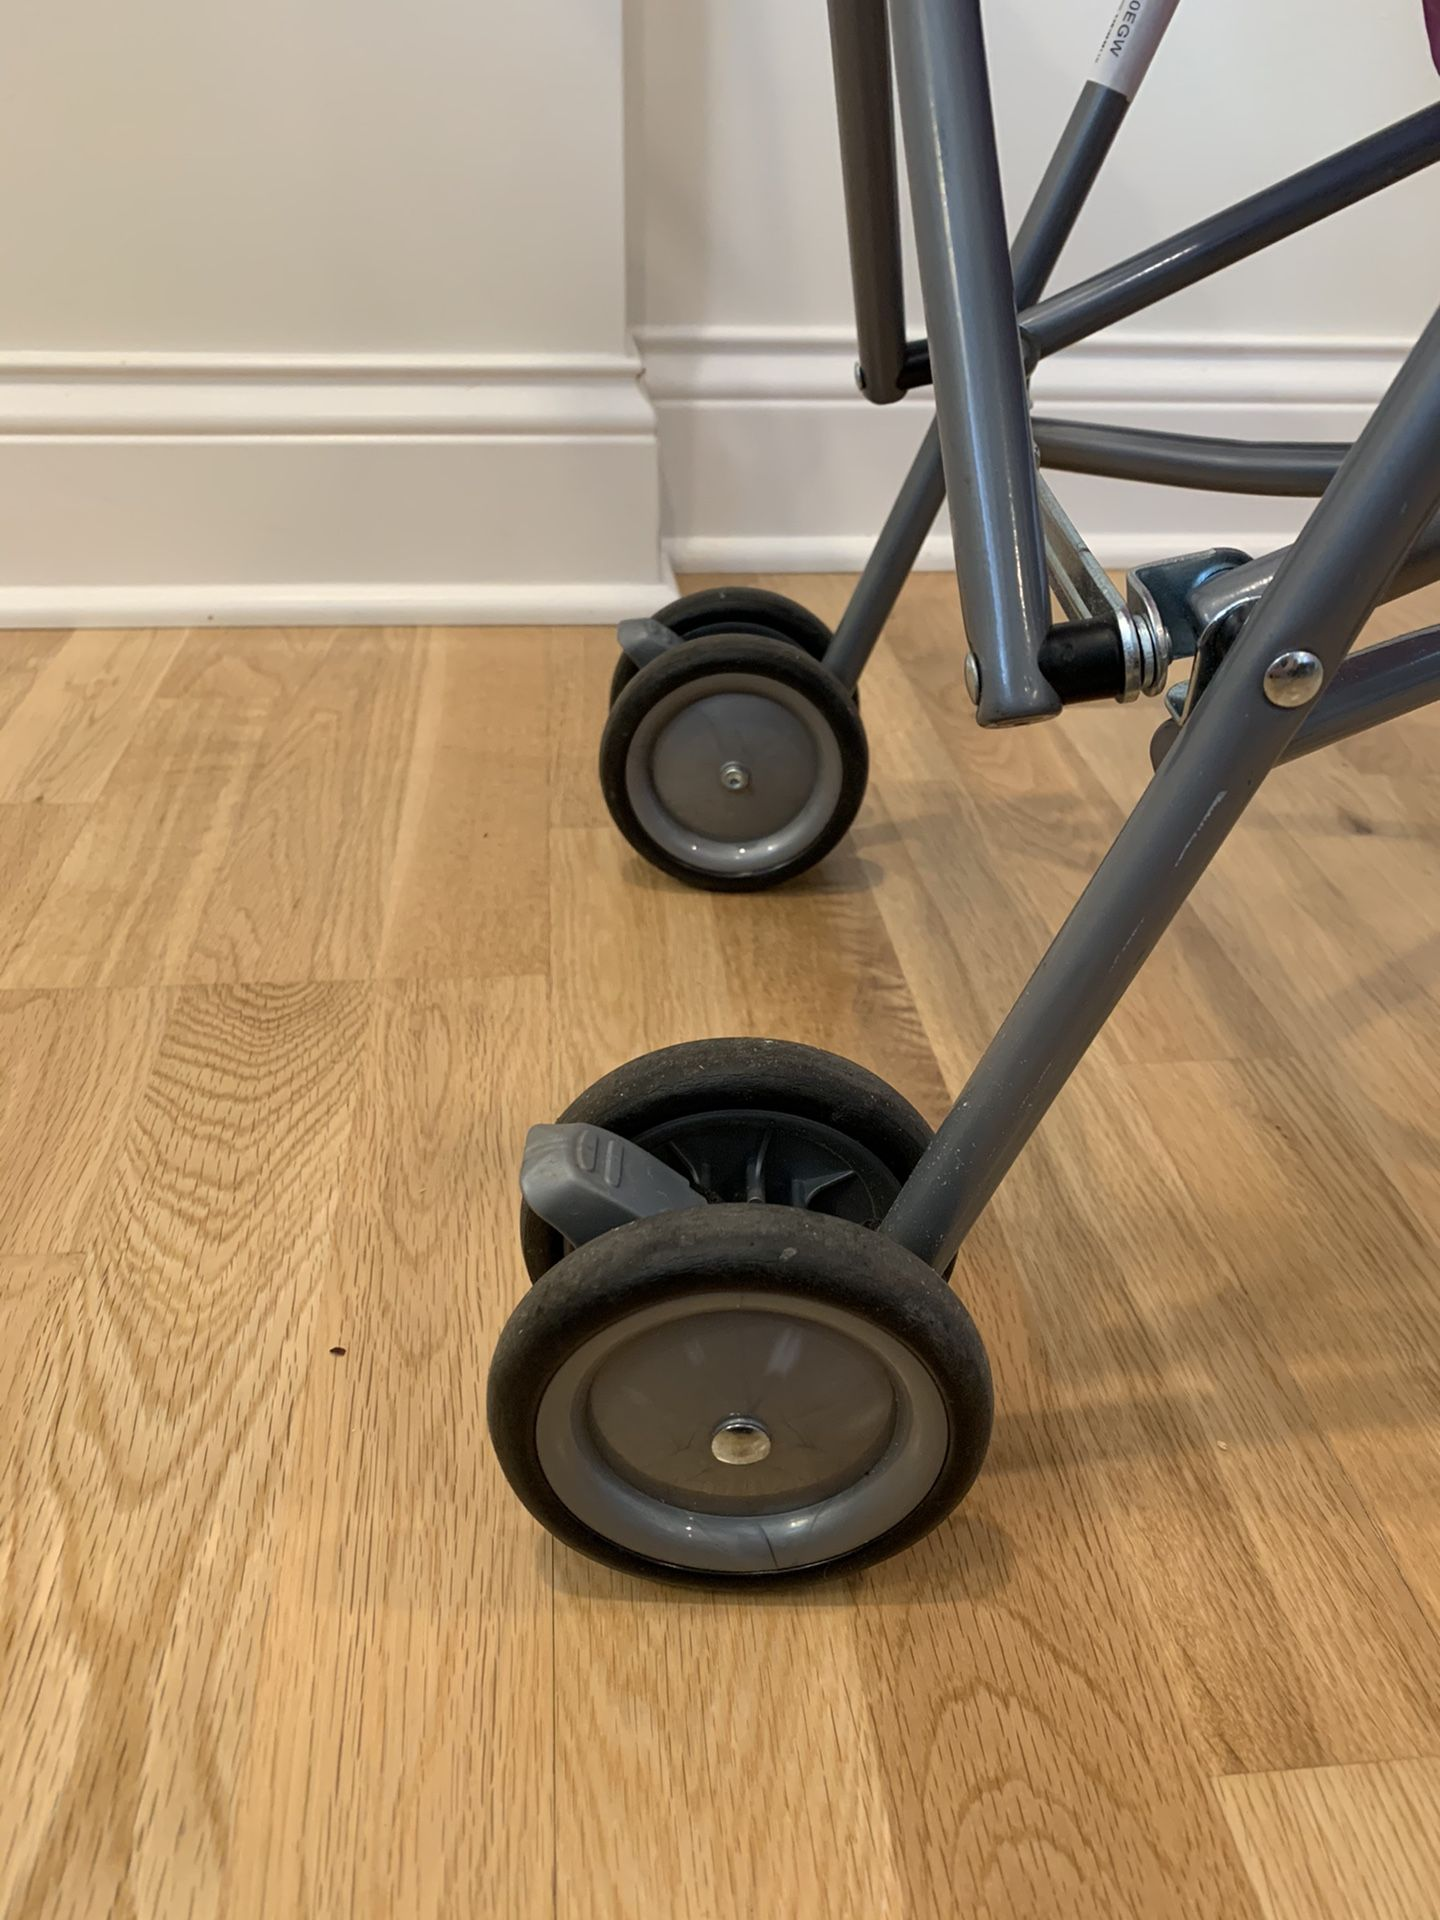 Like New~Cosco Baby stroller with brakes